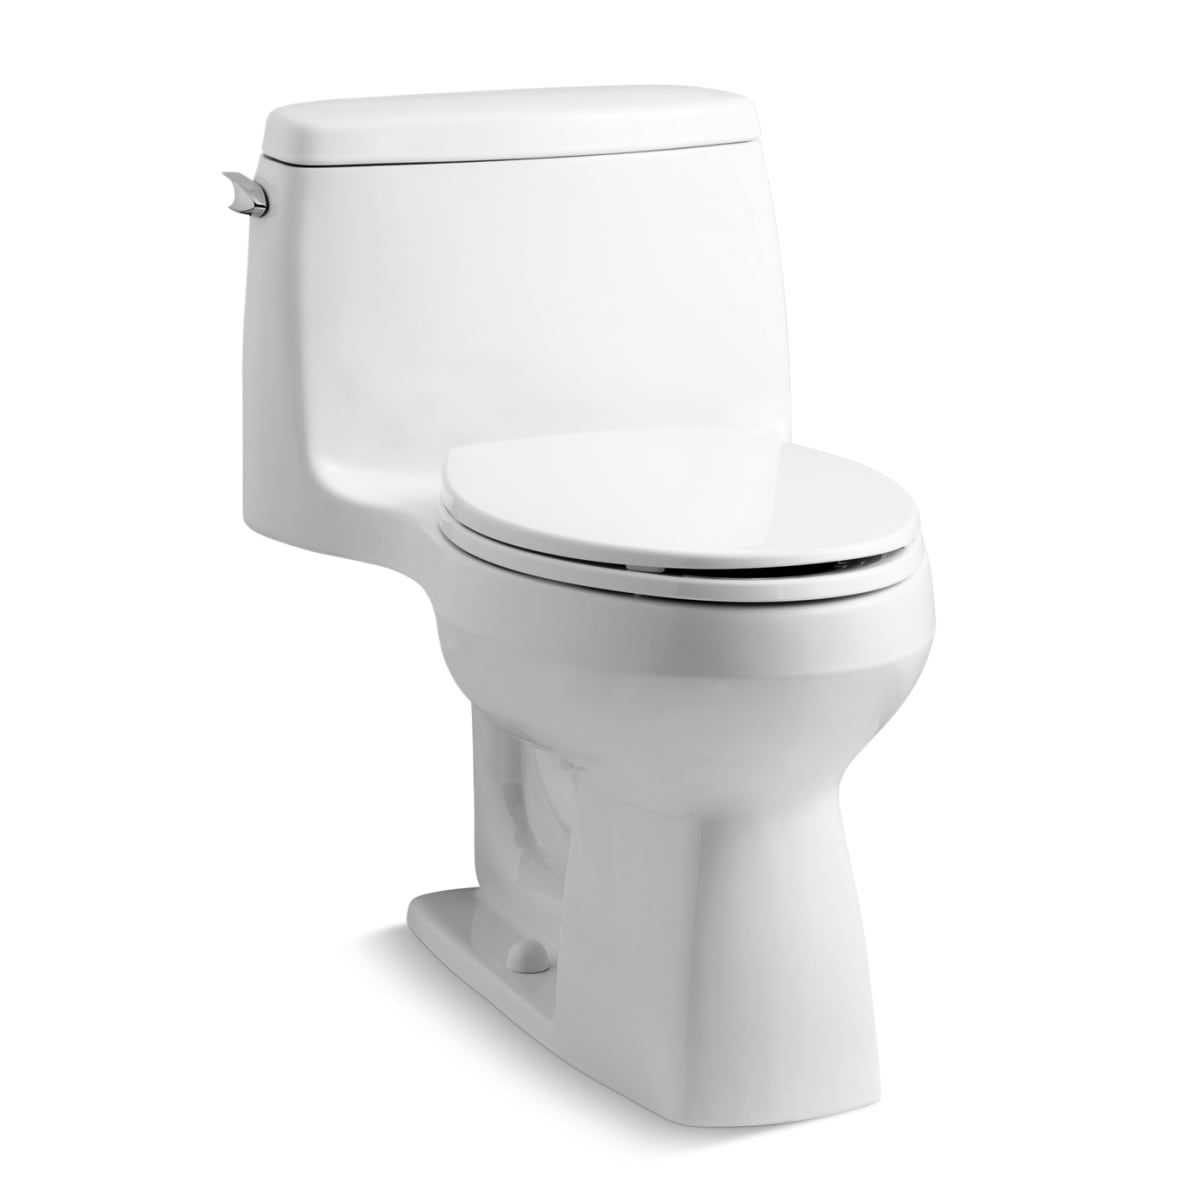 Kohler K 3810 47 Almond Santa Rosa 1 28 Gpf One Piece Elongated Comfort Height Toilet With Aquapiston Technology Includes Brev Kohler Toilet Bathroom Toilets